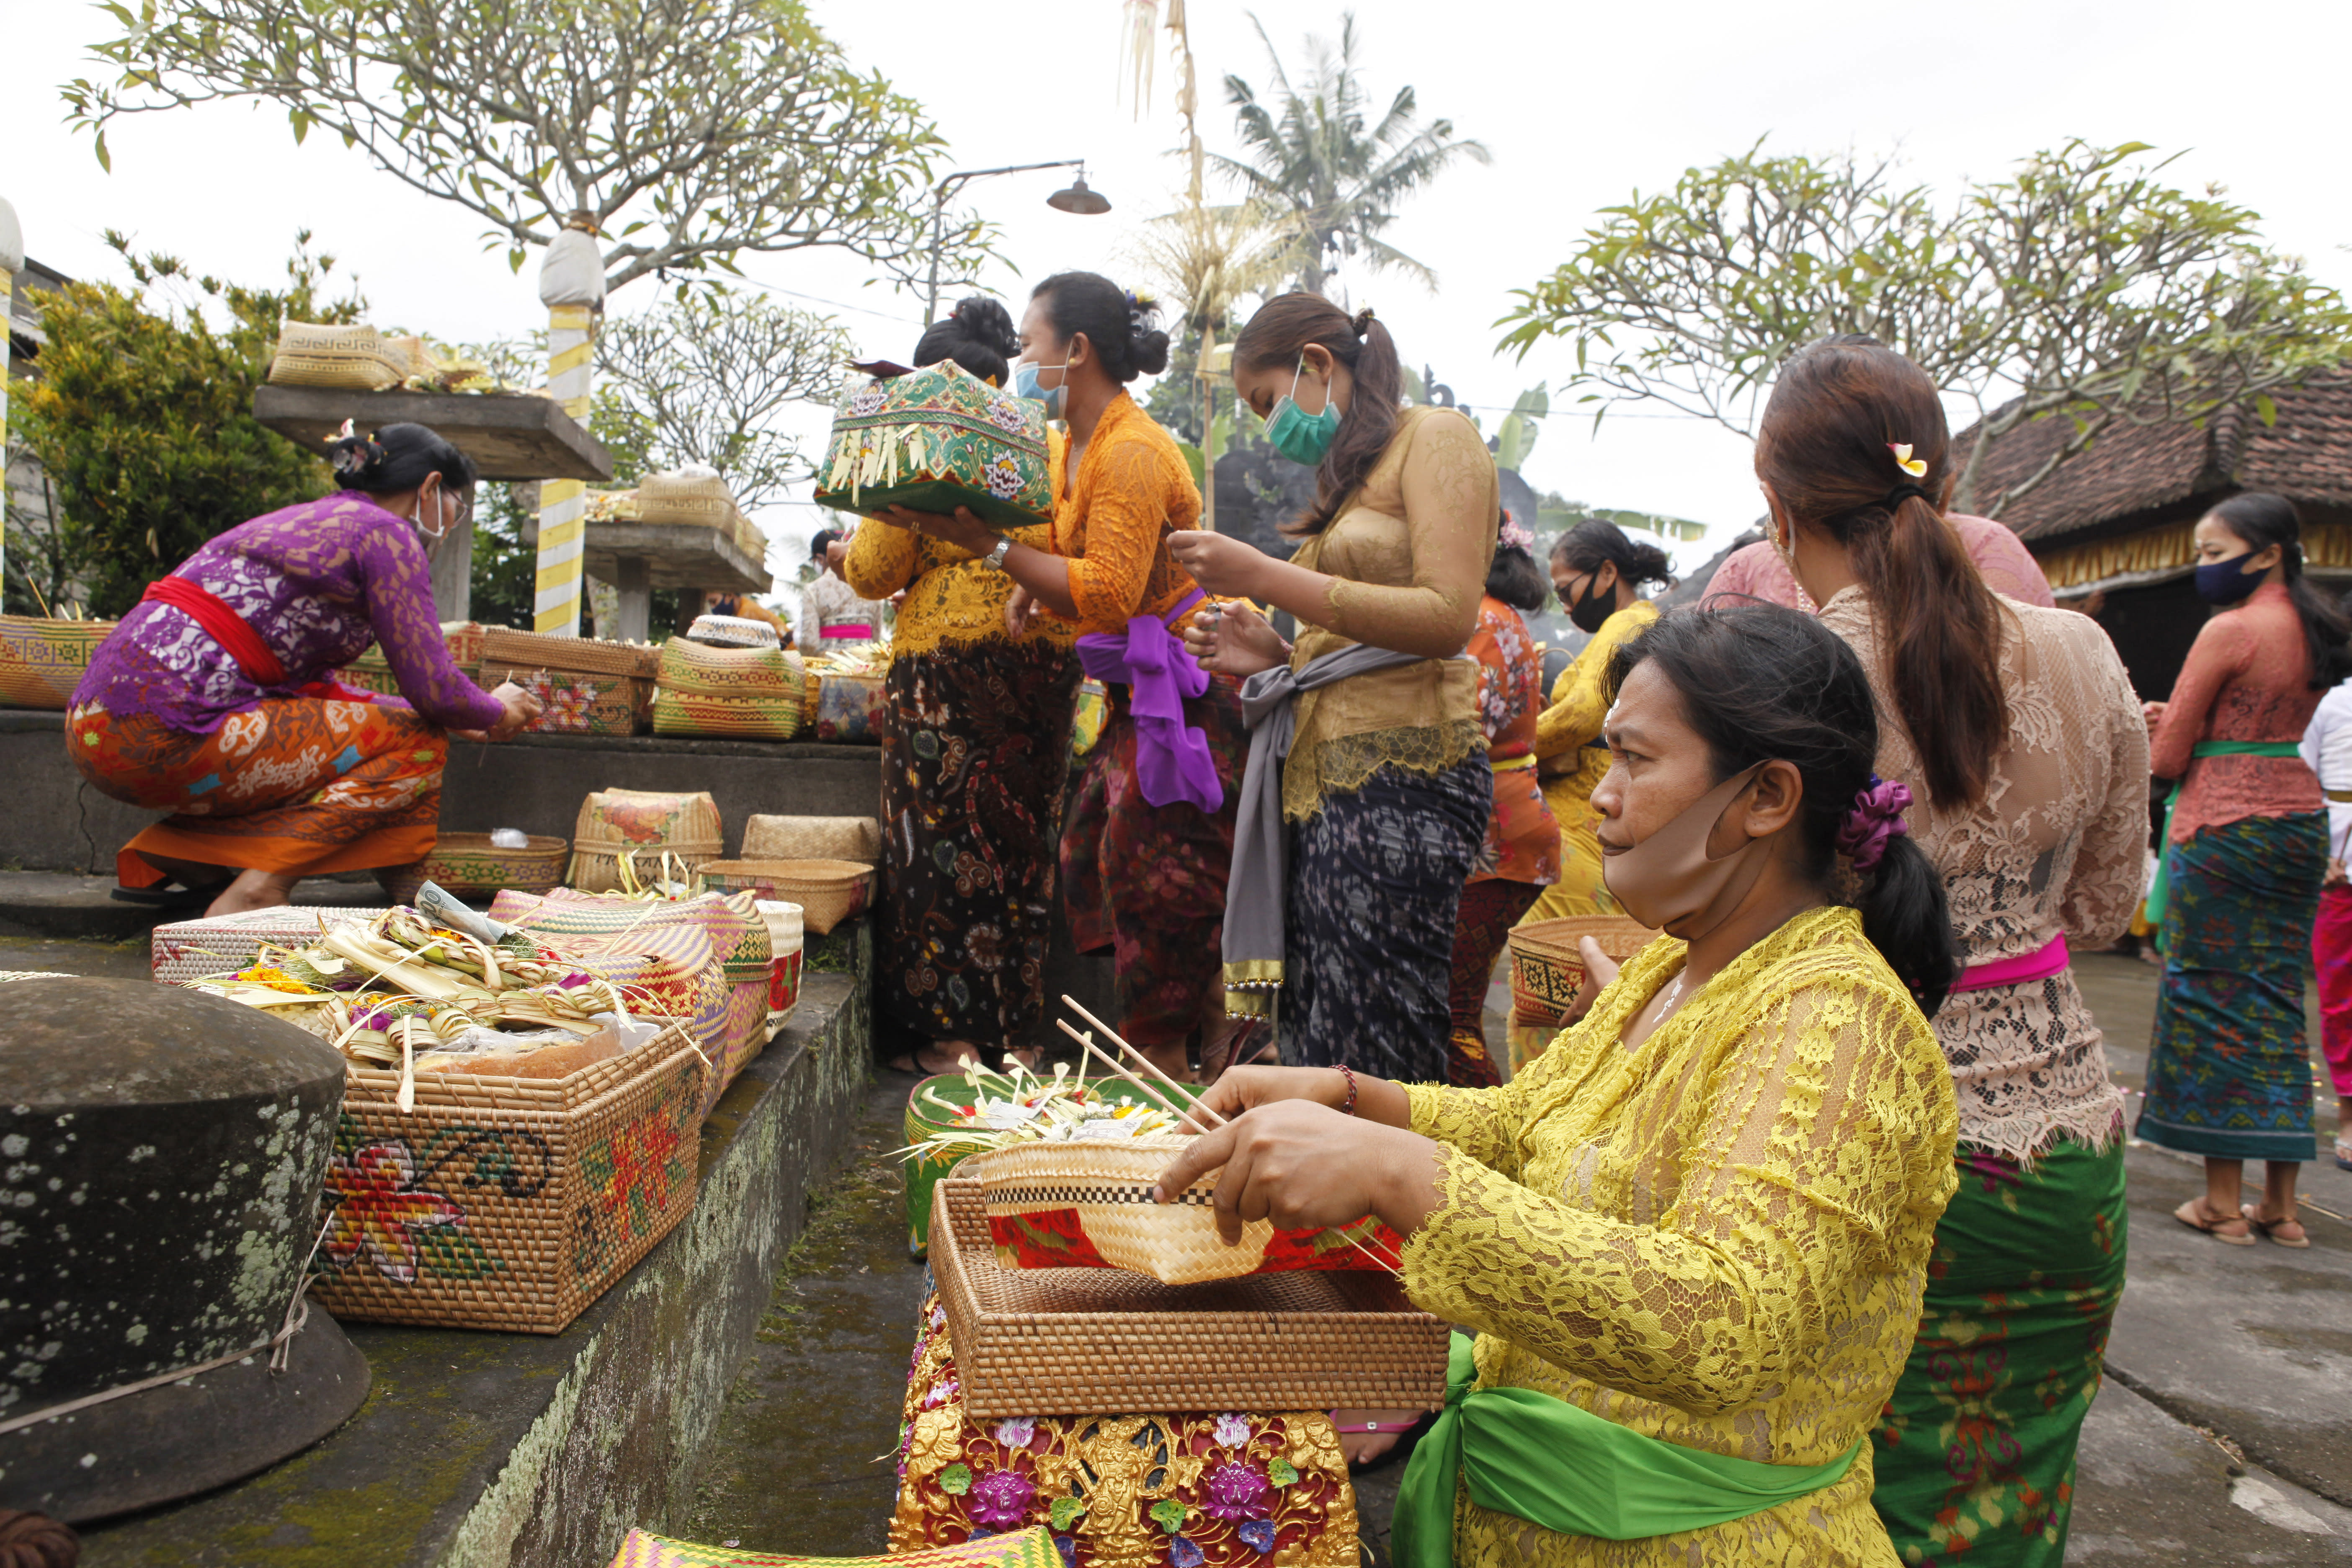 Women wearing face masks as a precaution against the new coronavirus outbreak participate in a Hindu ritual at a temple in Bali, Indonesia, Wednesday, Sept. 16, 2020. (AP Photo/Firdia Lisnawati)